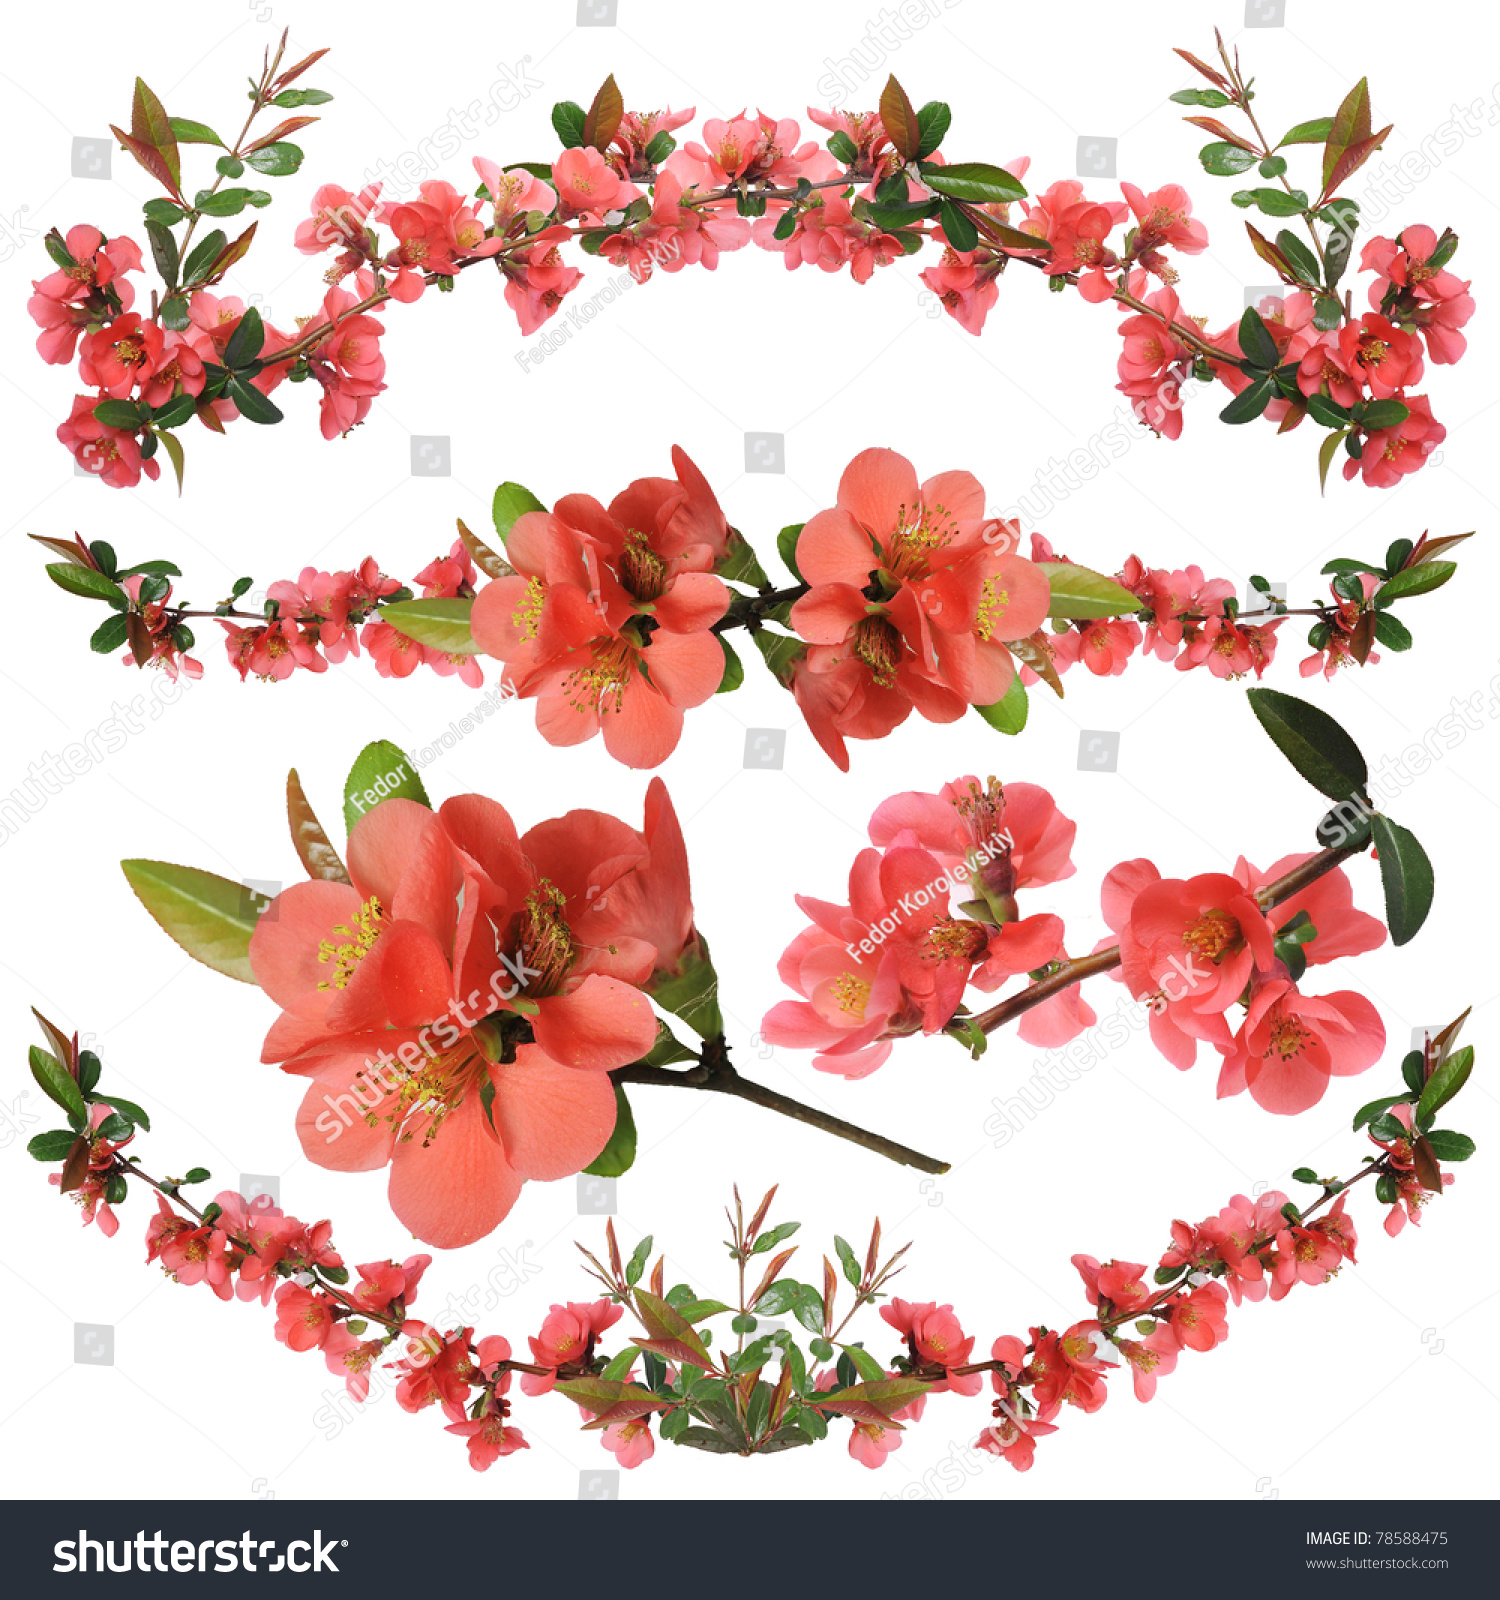 Ornamental shrub flowers japanese quince isolated stock photo ornamental shrub flowers a japanese quince it is isolated on a white background biocorpaavc Image collections